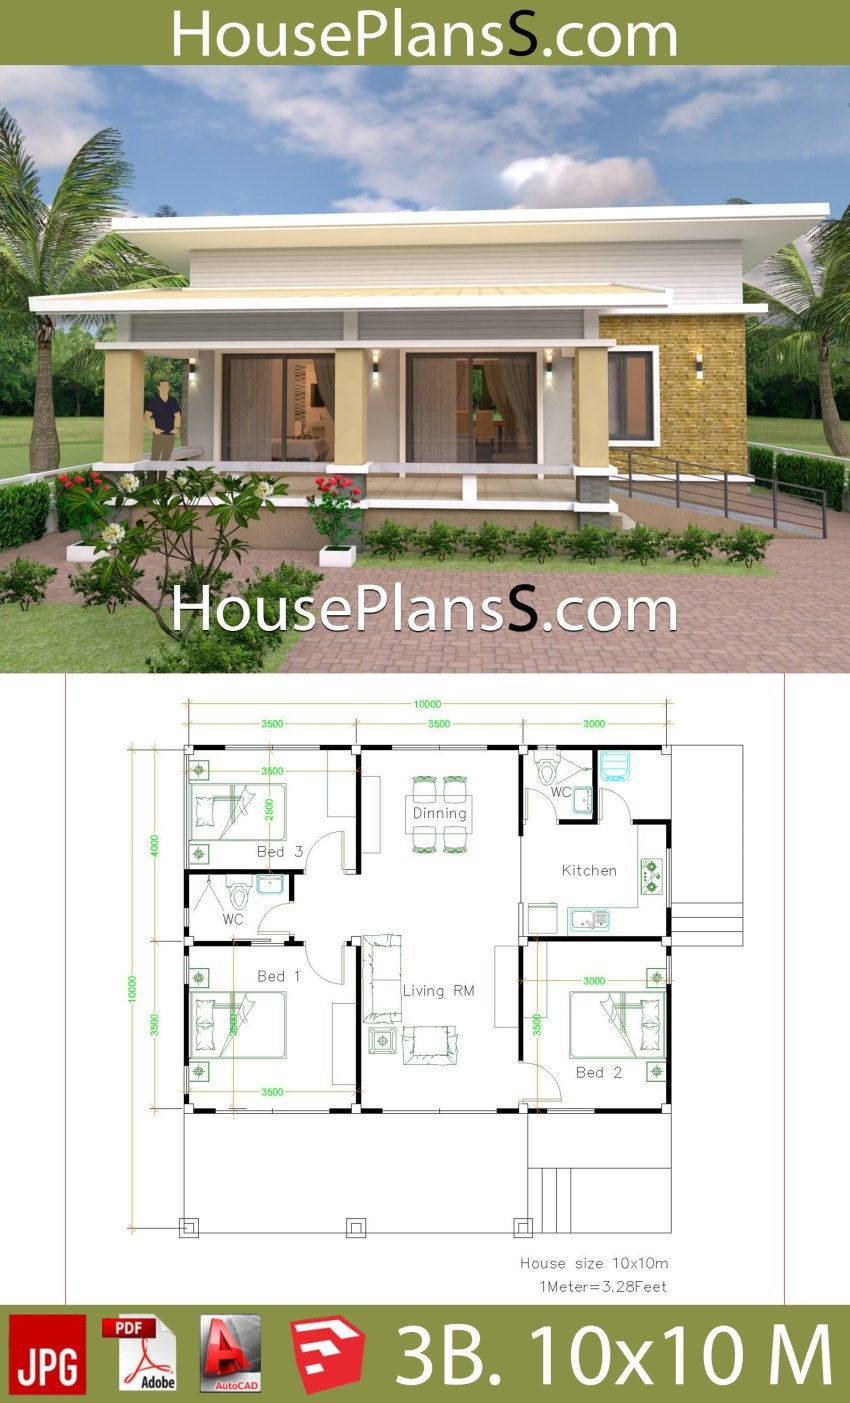 House Design Plans 10x10 With 3 Bedrooms Full Interior